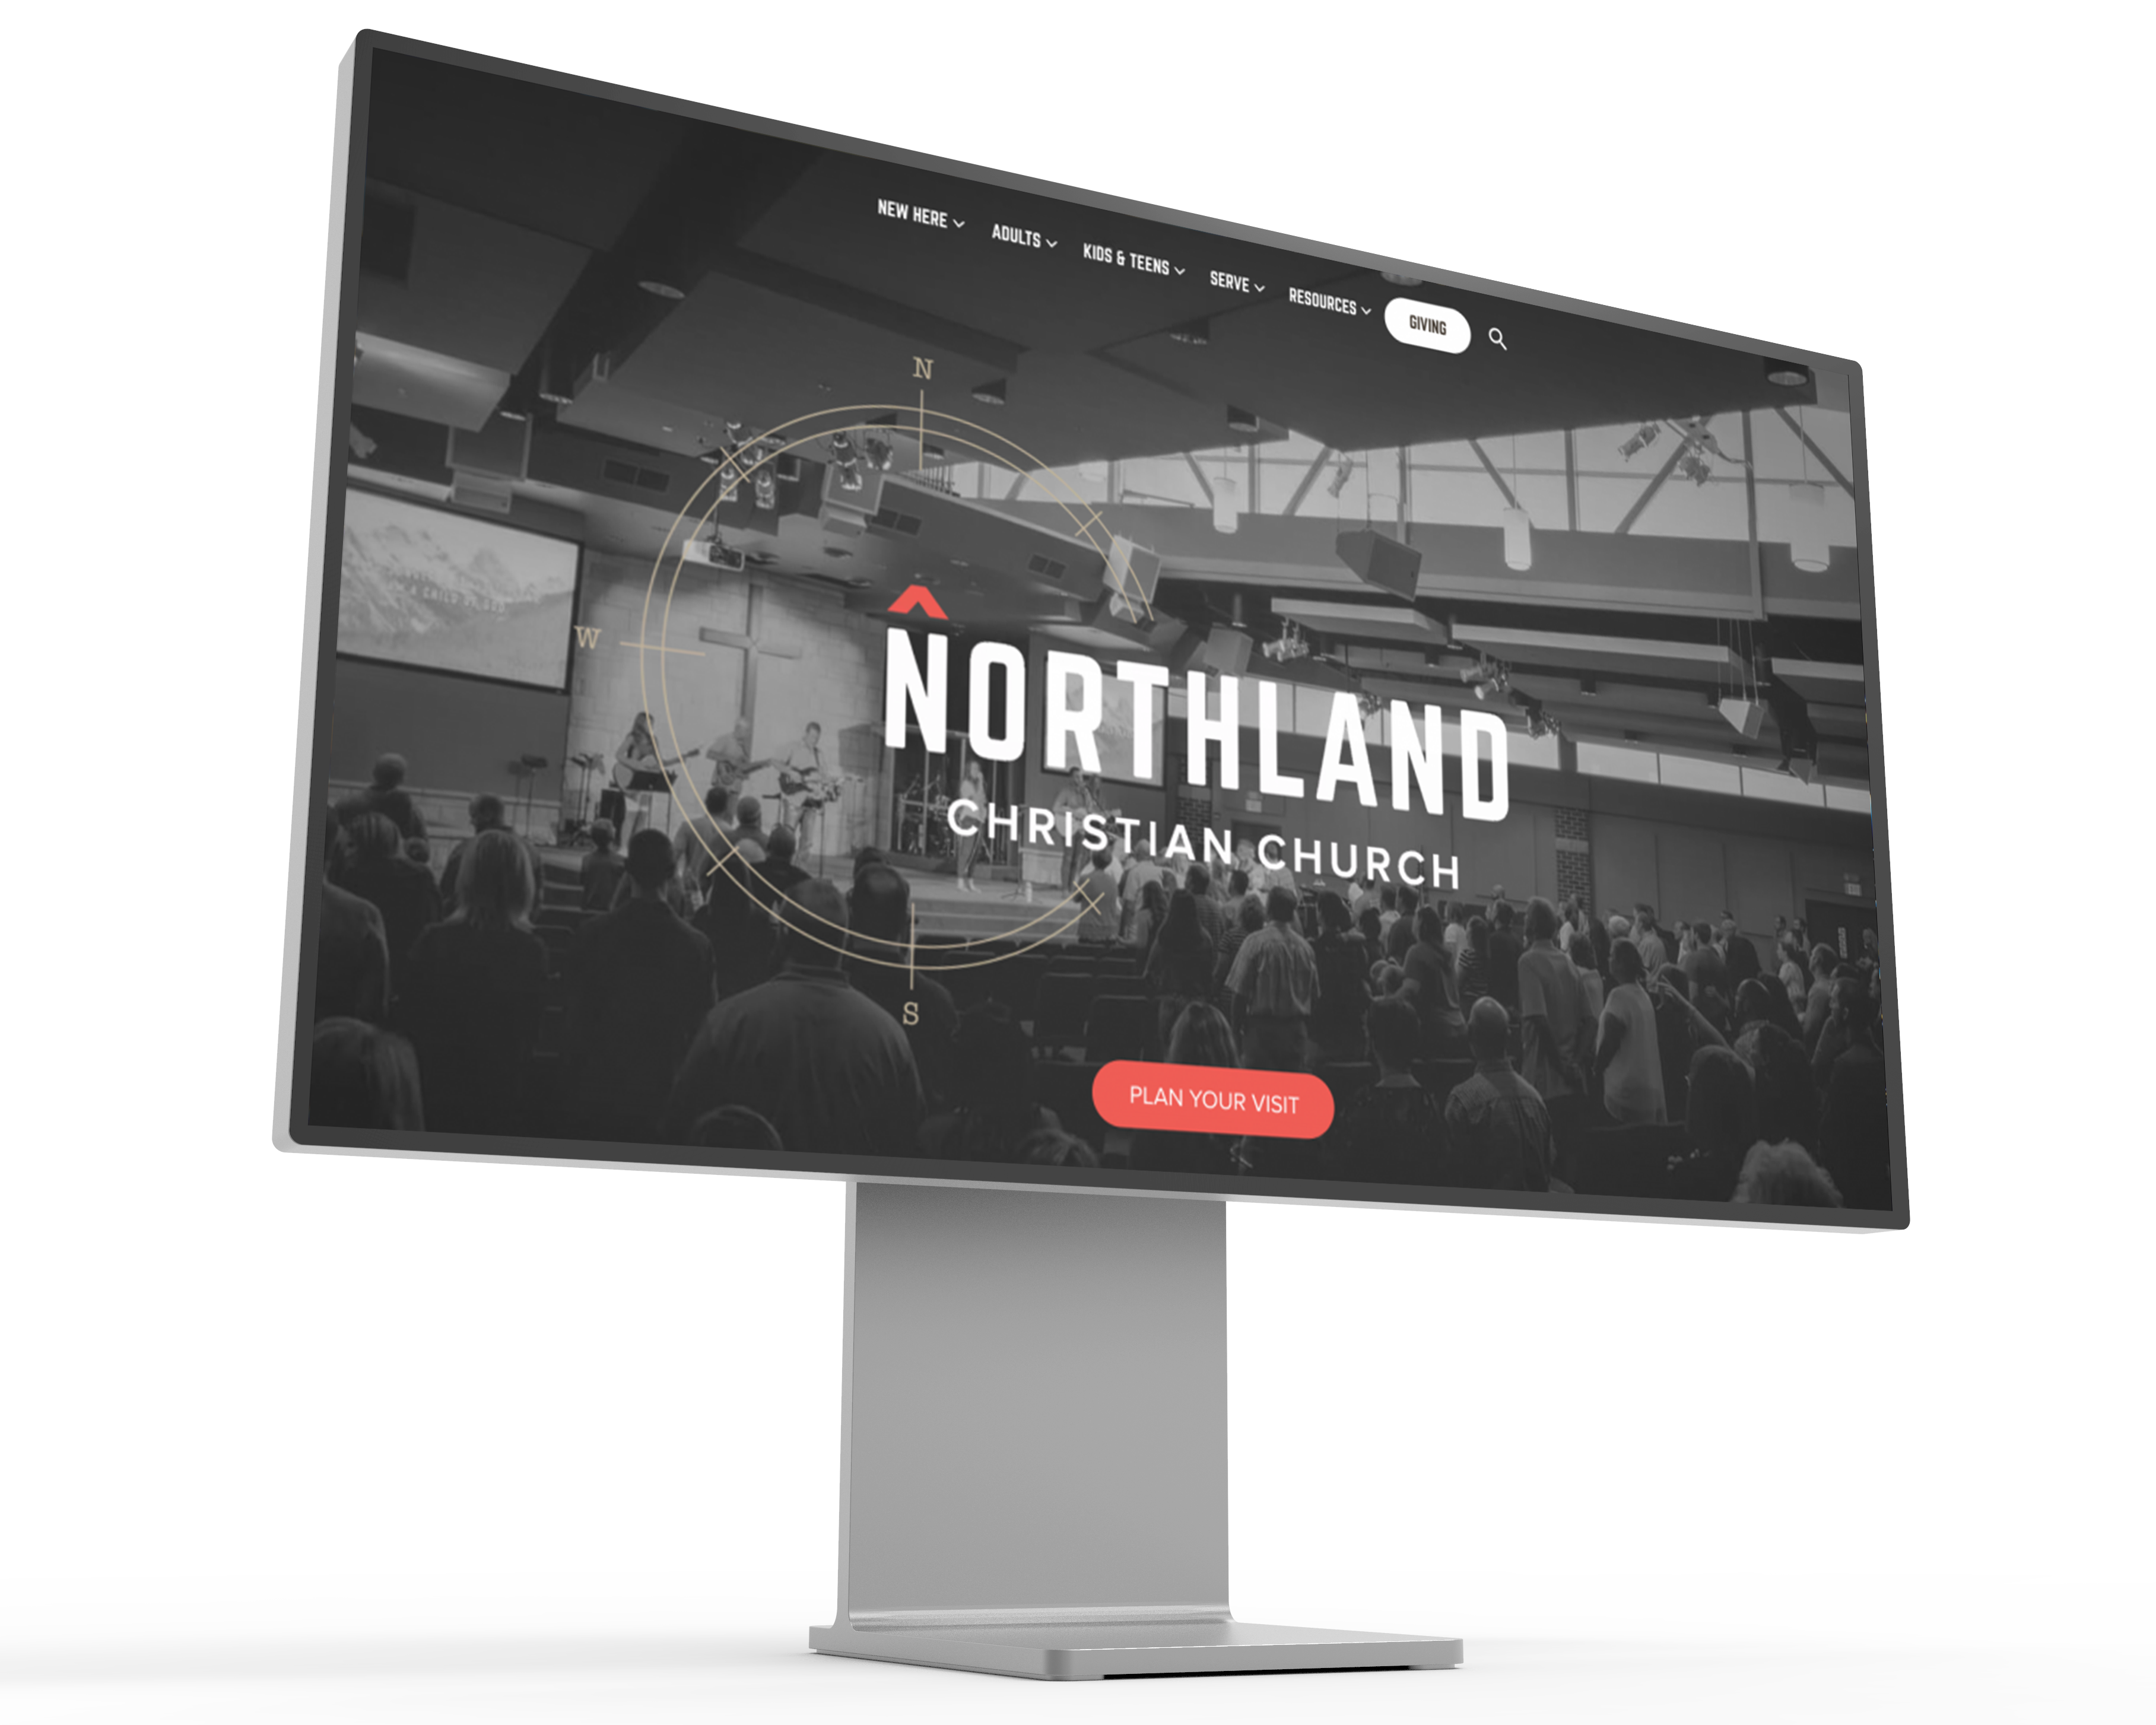 Image of the Northland Christian Church of Topeka website displayed on a mockup of a Pro XDR Display.